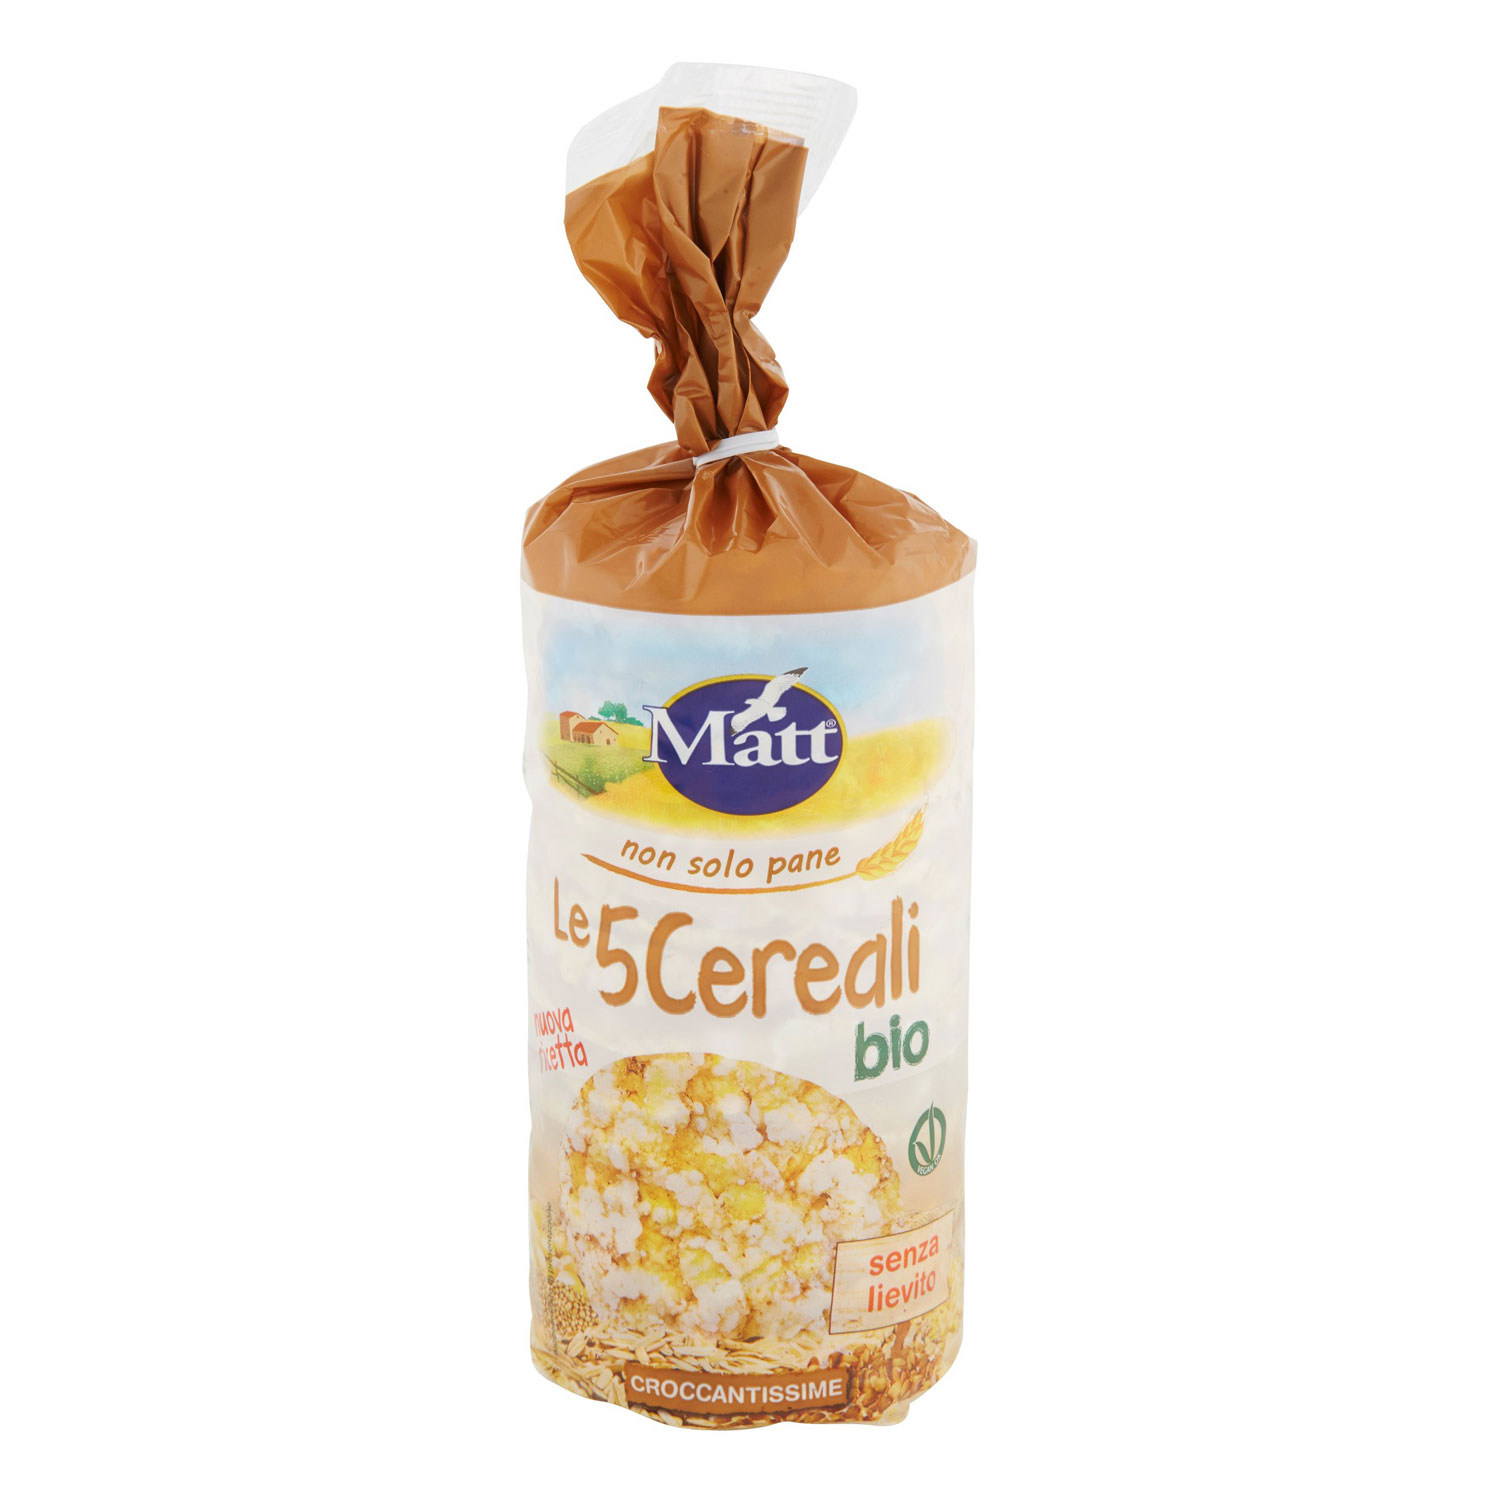 gallette bio ai 5 cereali